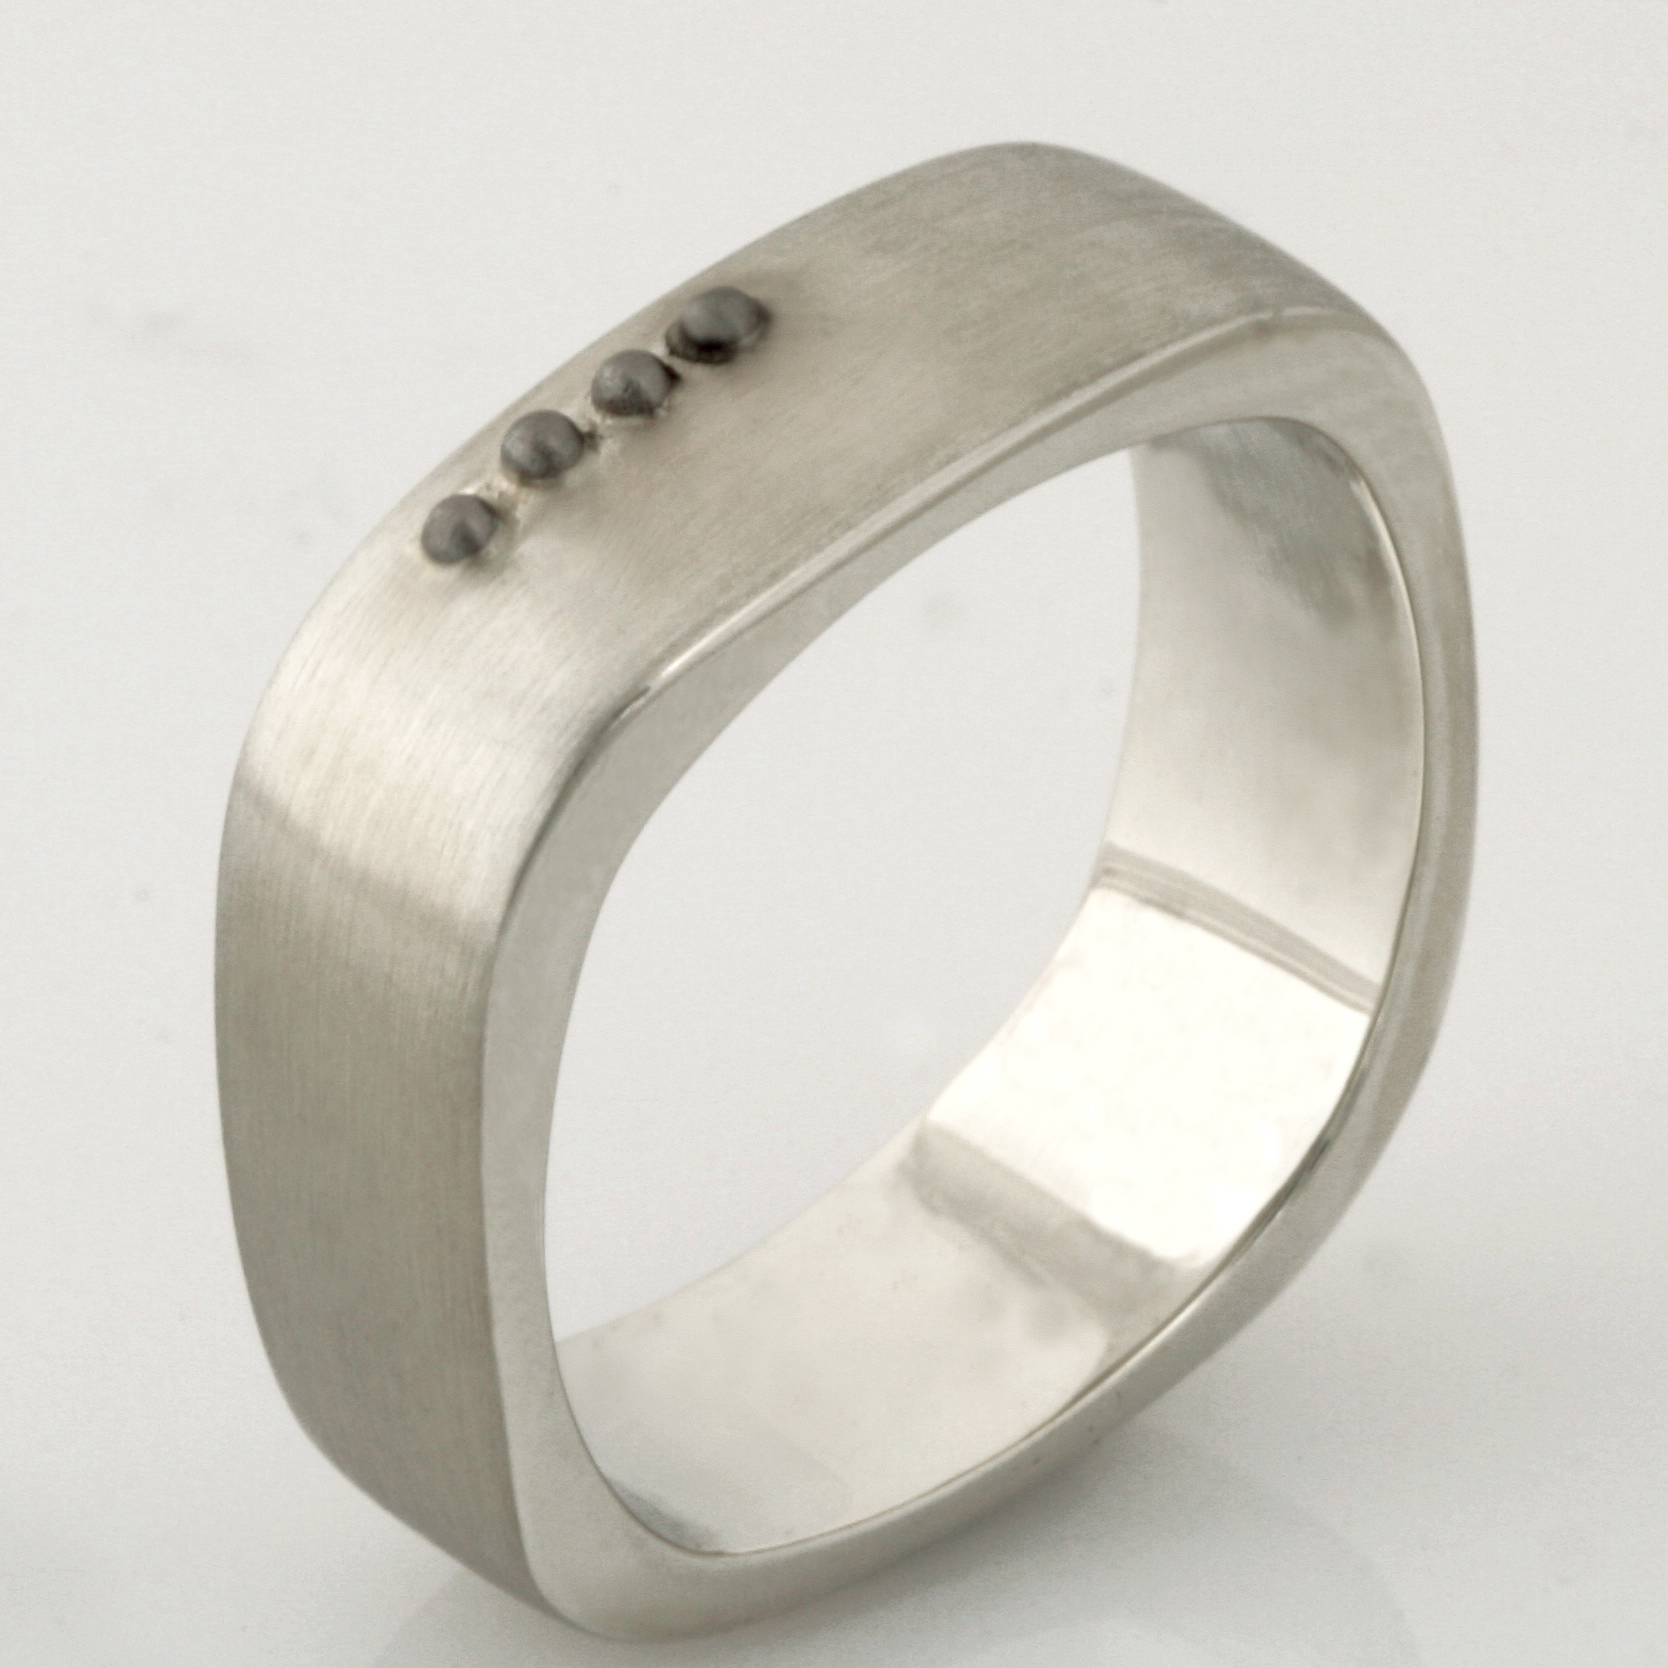 Handmade 9ct and 18ct white gold gents wedding ring